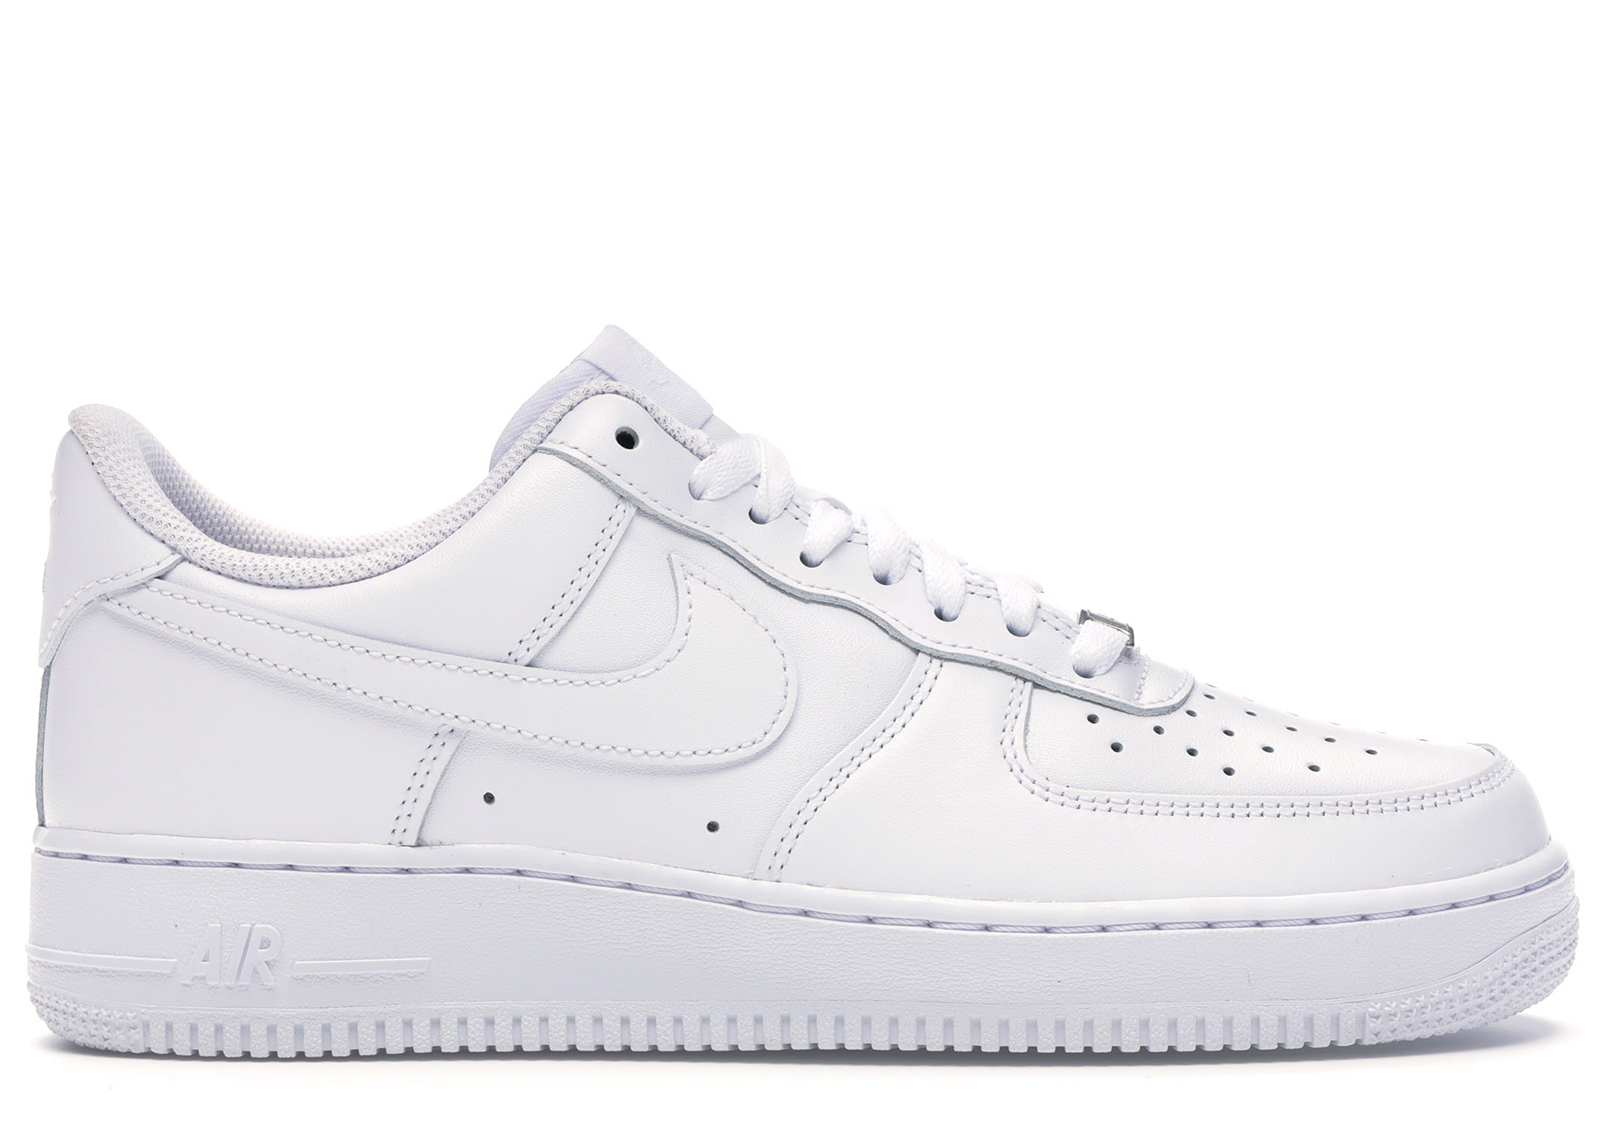 Nike Air Force 2 : Buy Nike Sneakers & Shoes | Air force 1